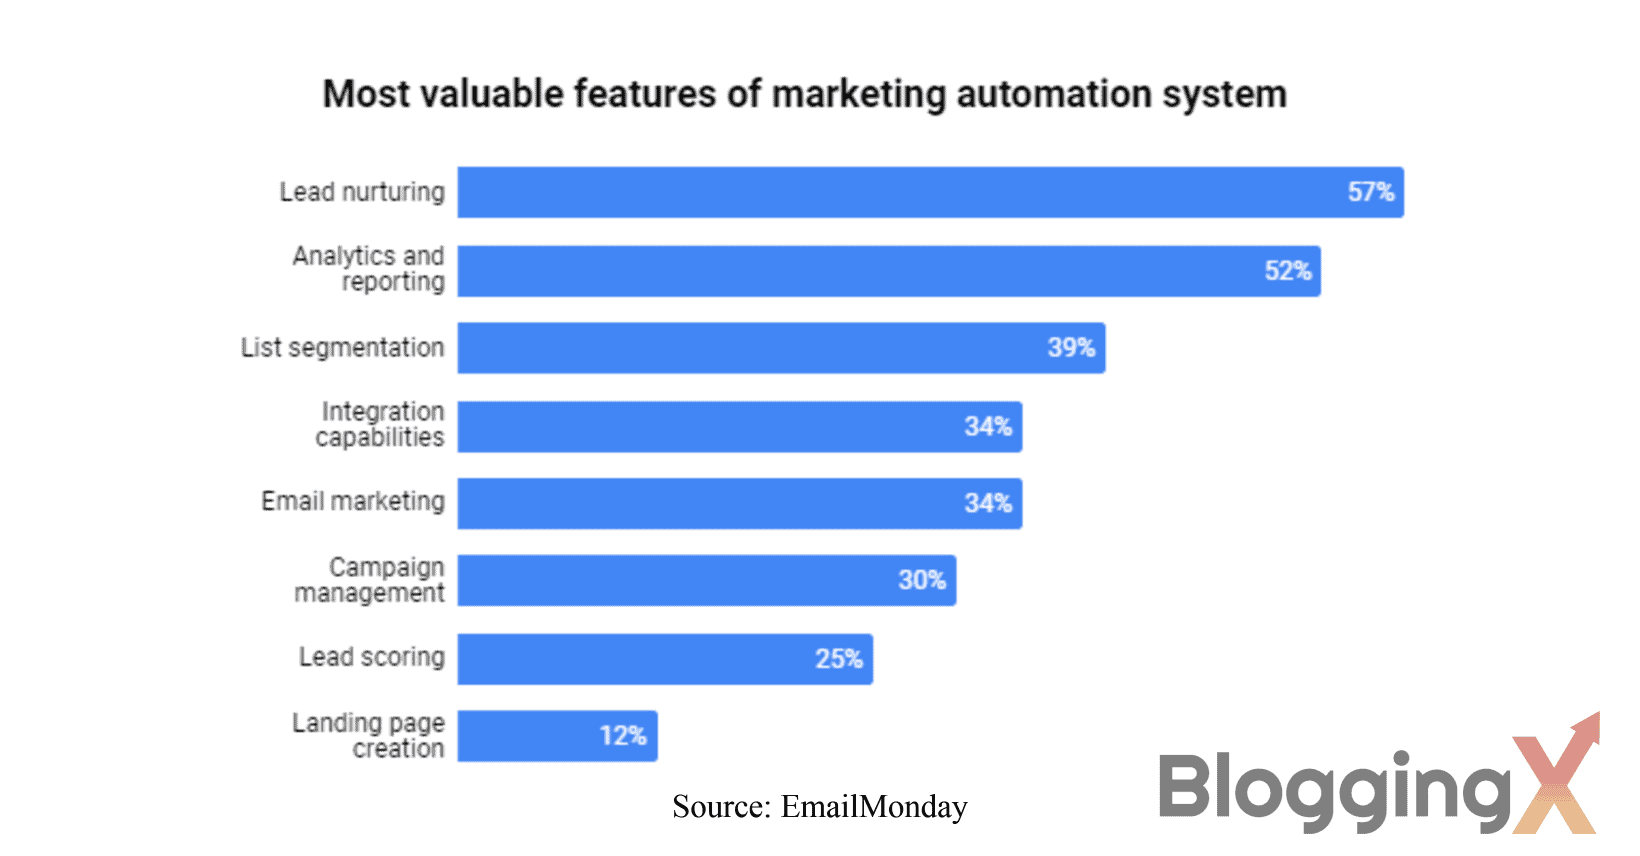 Most valuable features of the marketing automation system